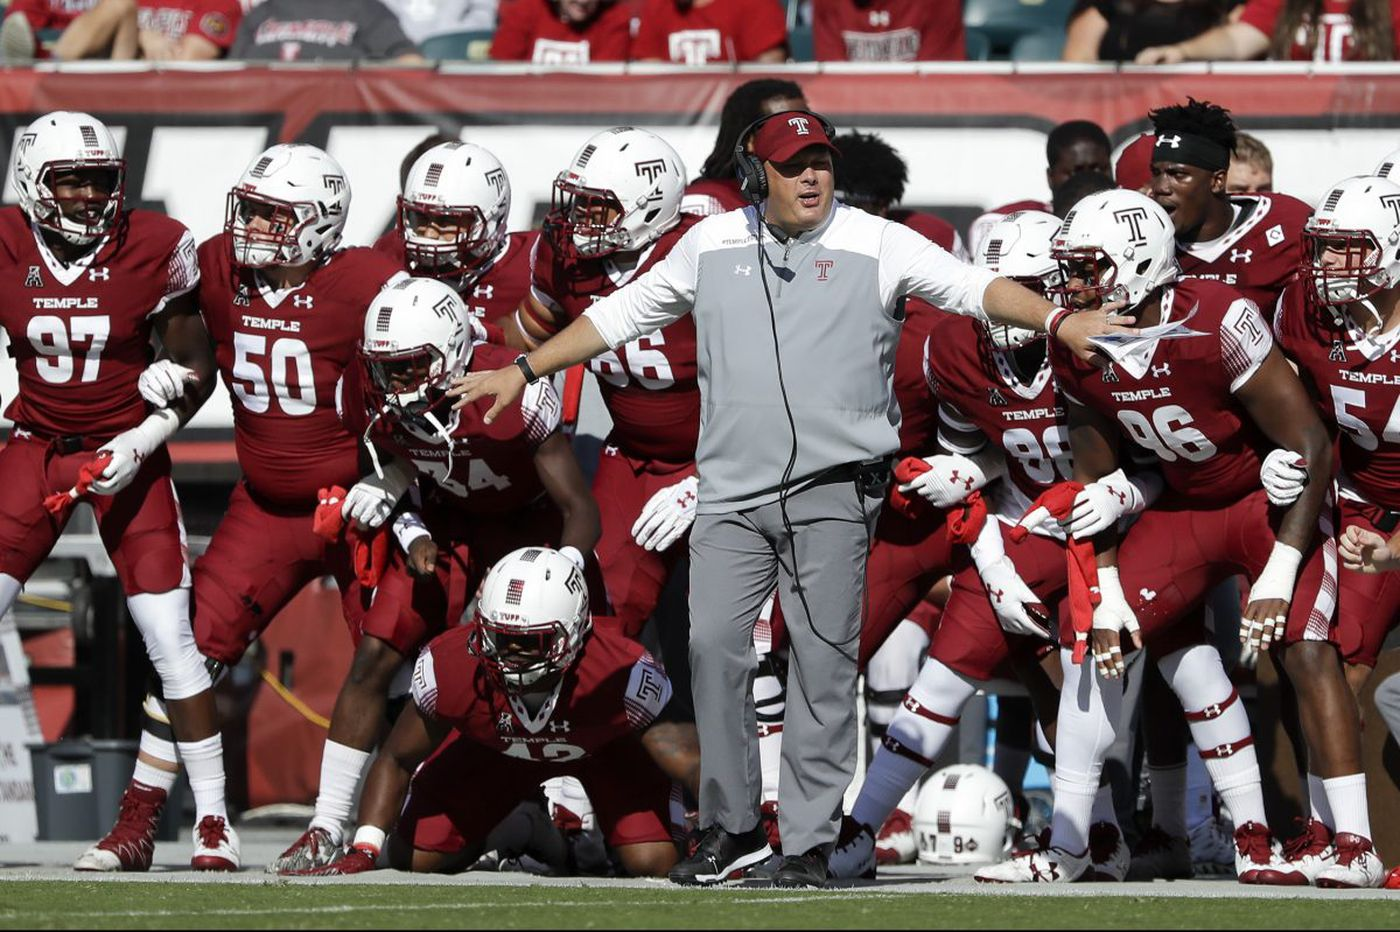 For Temple football staff, hectic time with recruiting and bowl prep